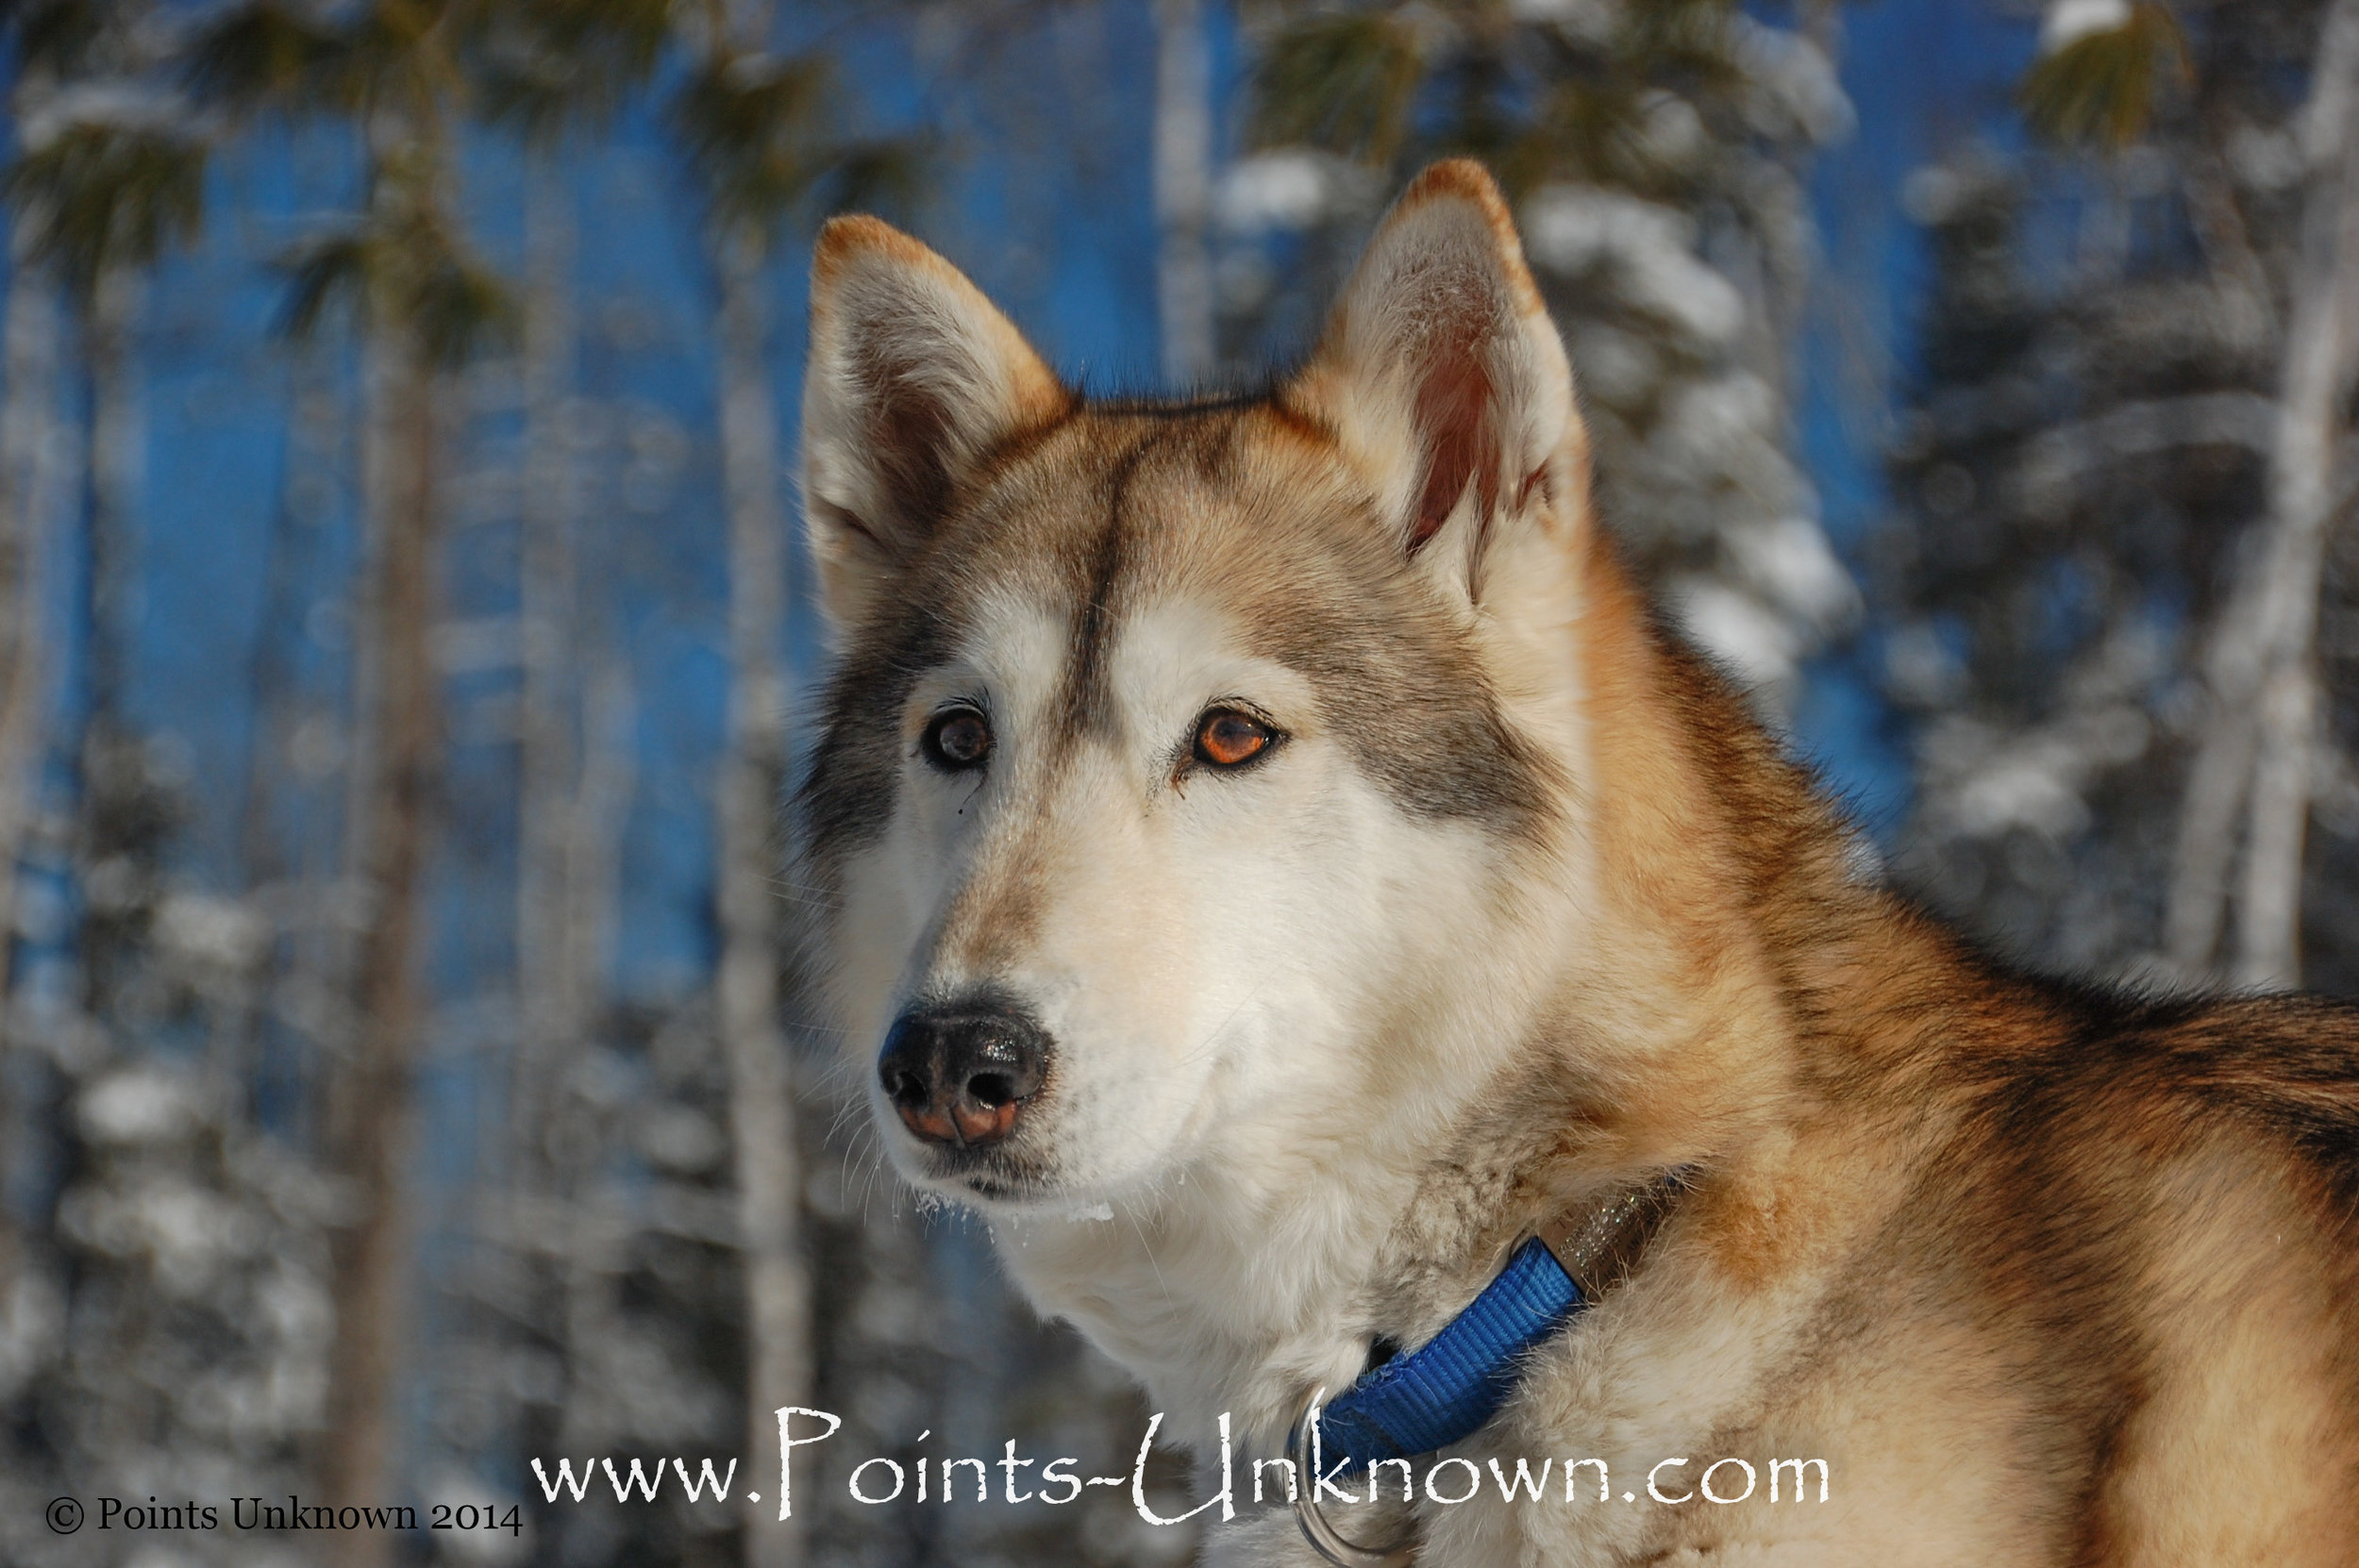 Newman's dog Tuloon, who was her first Hedlund Husky. Originally, Newman flew to Alaska in 2004 to retrieve Tuloon's brother, but Tuloon had other ideas and picked Newman for her own